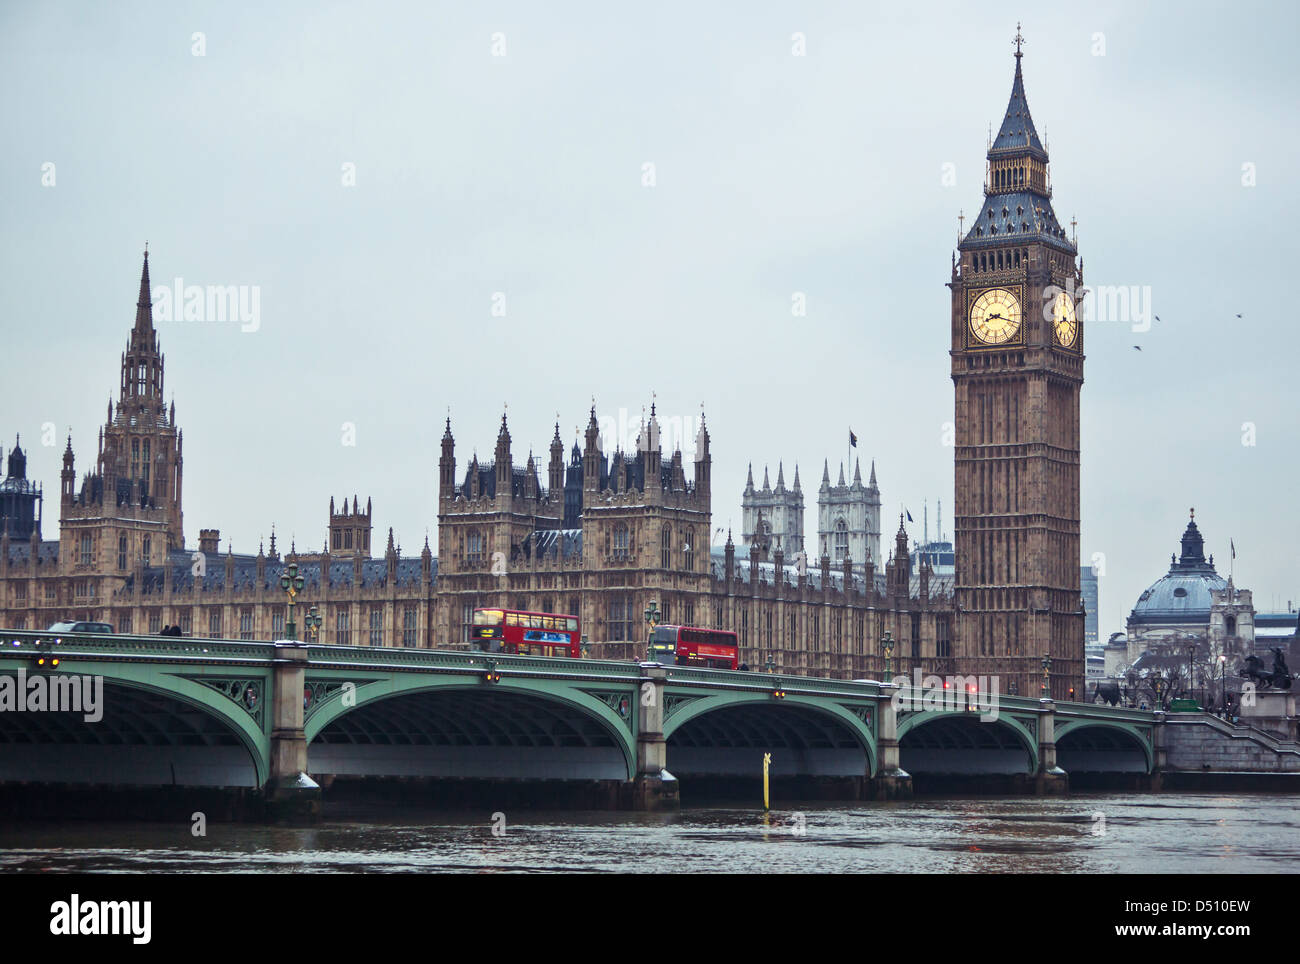 The Houses of Parliament, Elizabeth Tower and Westminster Bridge, seen from South Bank, London, England, UK. - Stock Image